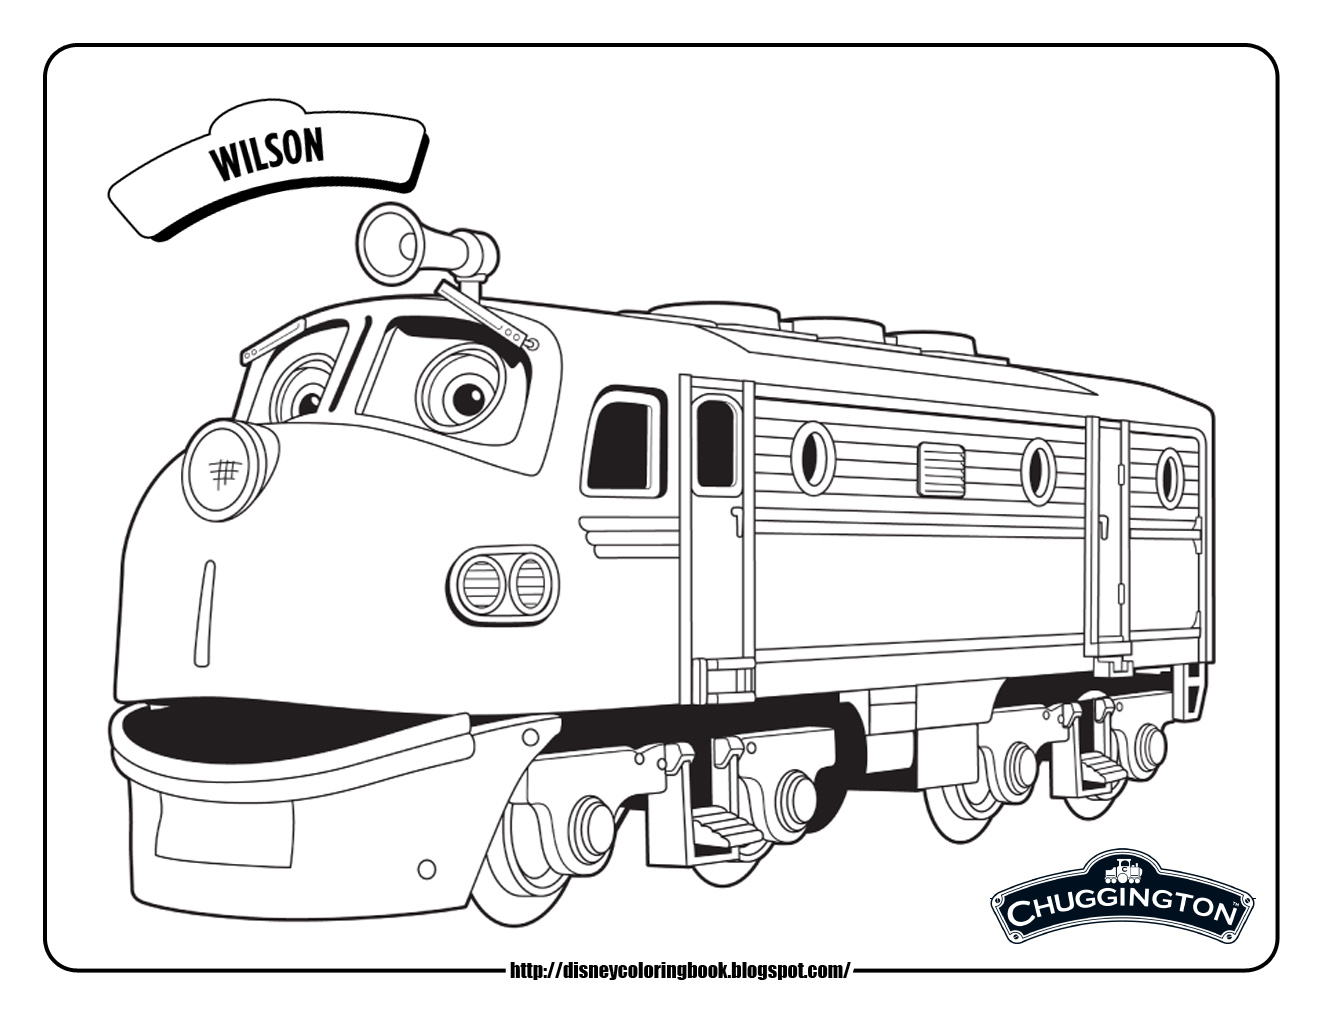 Disney Coloring Pages And Sheets For Kids Chuggington 1 Free